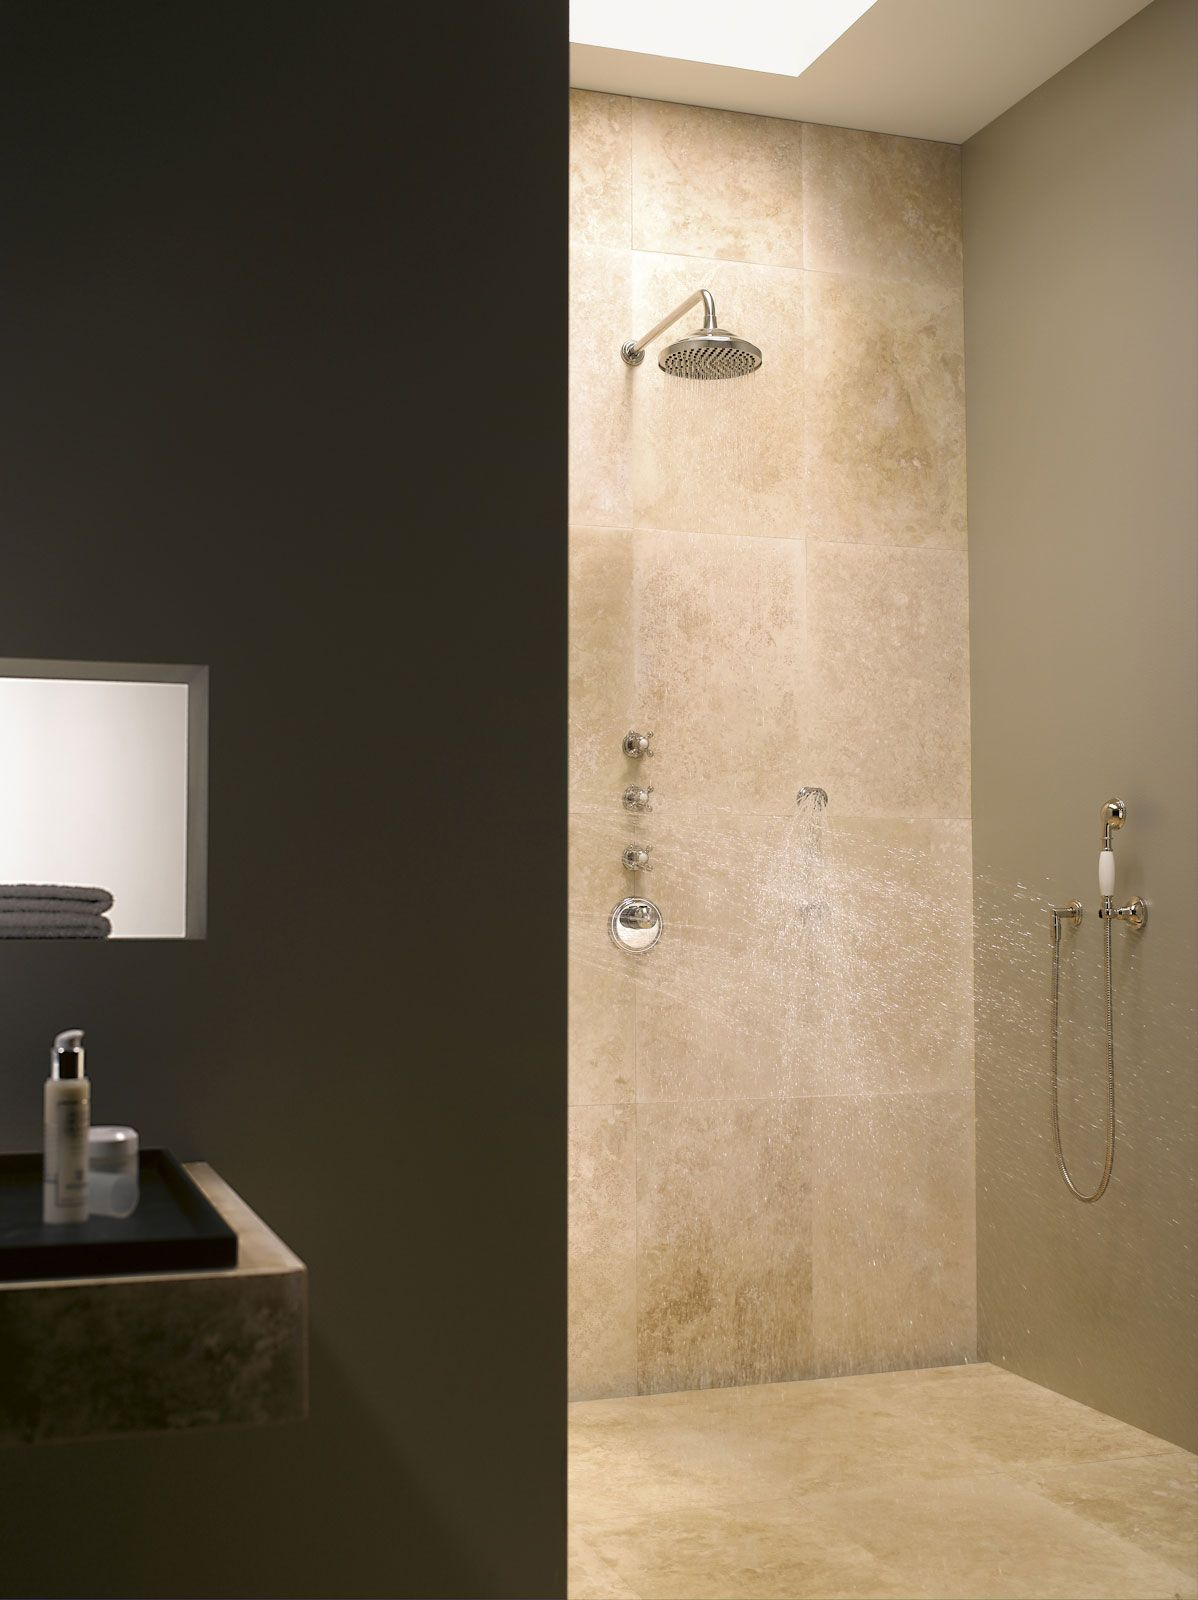 Dornbracht S Classic Design Showers Shower Head Body Jets And Hand Shower Madison Collection Dornbracht Shower Fittings Shower